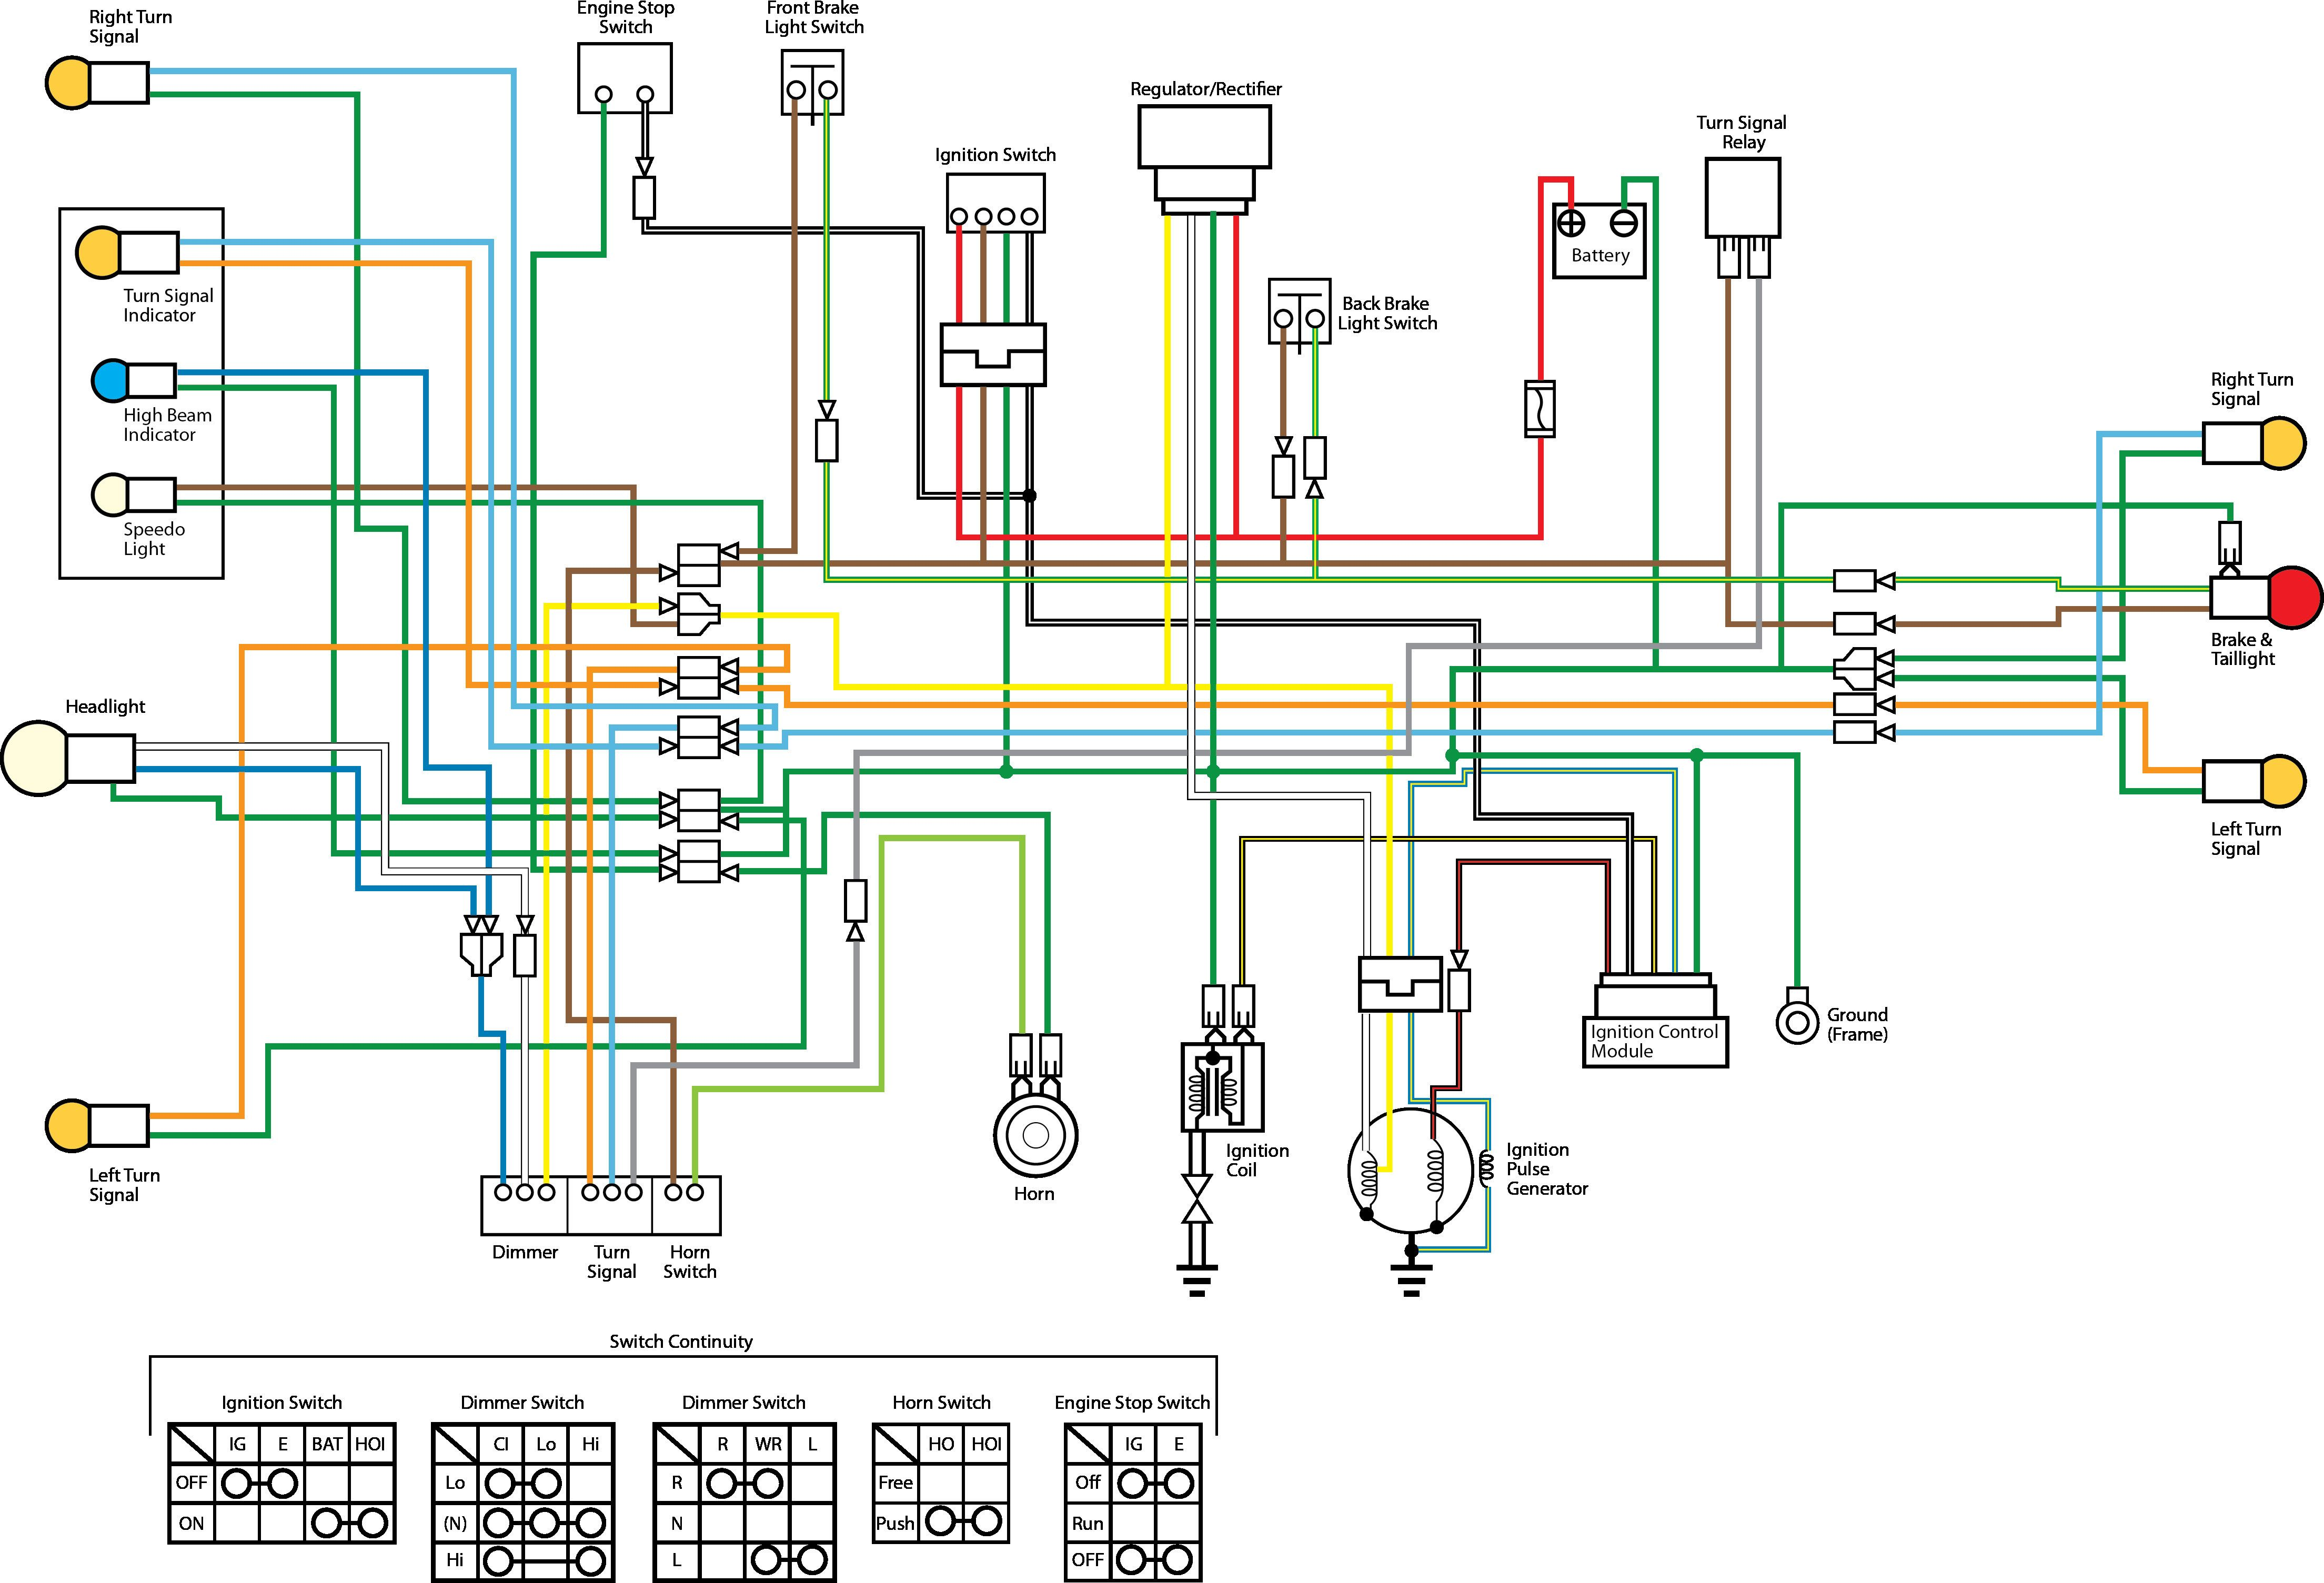 [DIAGRAM_38ZD]  23 Complex Wiring Diagram Online For You ,  https://bacamajalah.com/23-complex-wiring-diagram-onl… | Motorcycle wiring, Electrical  wiring diagram, Electrical diagram | Wiring A 110 Schematic |  | Pinterest